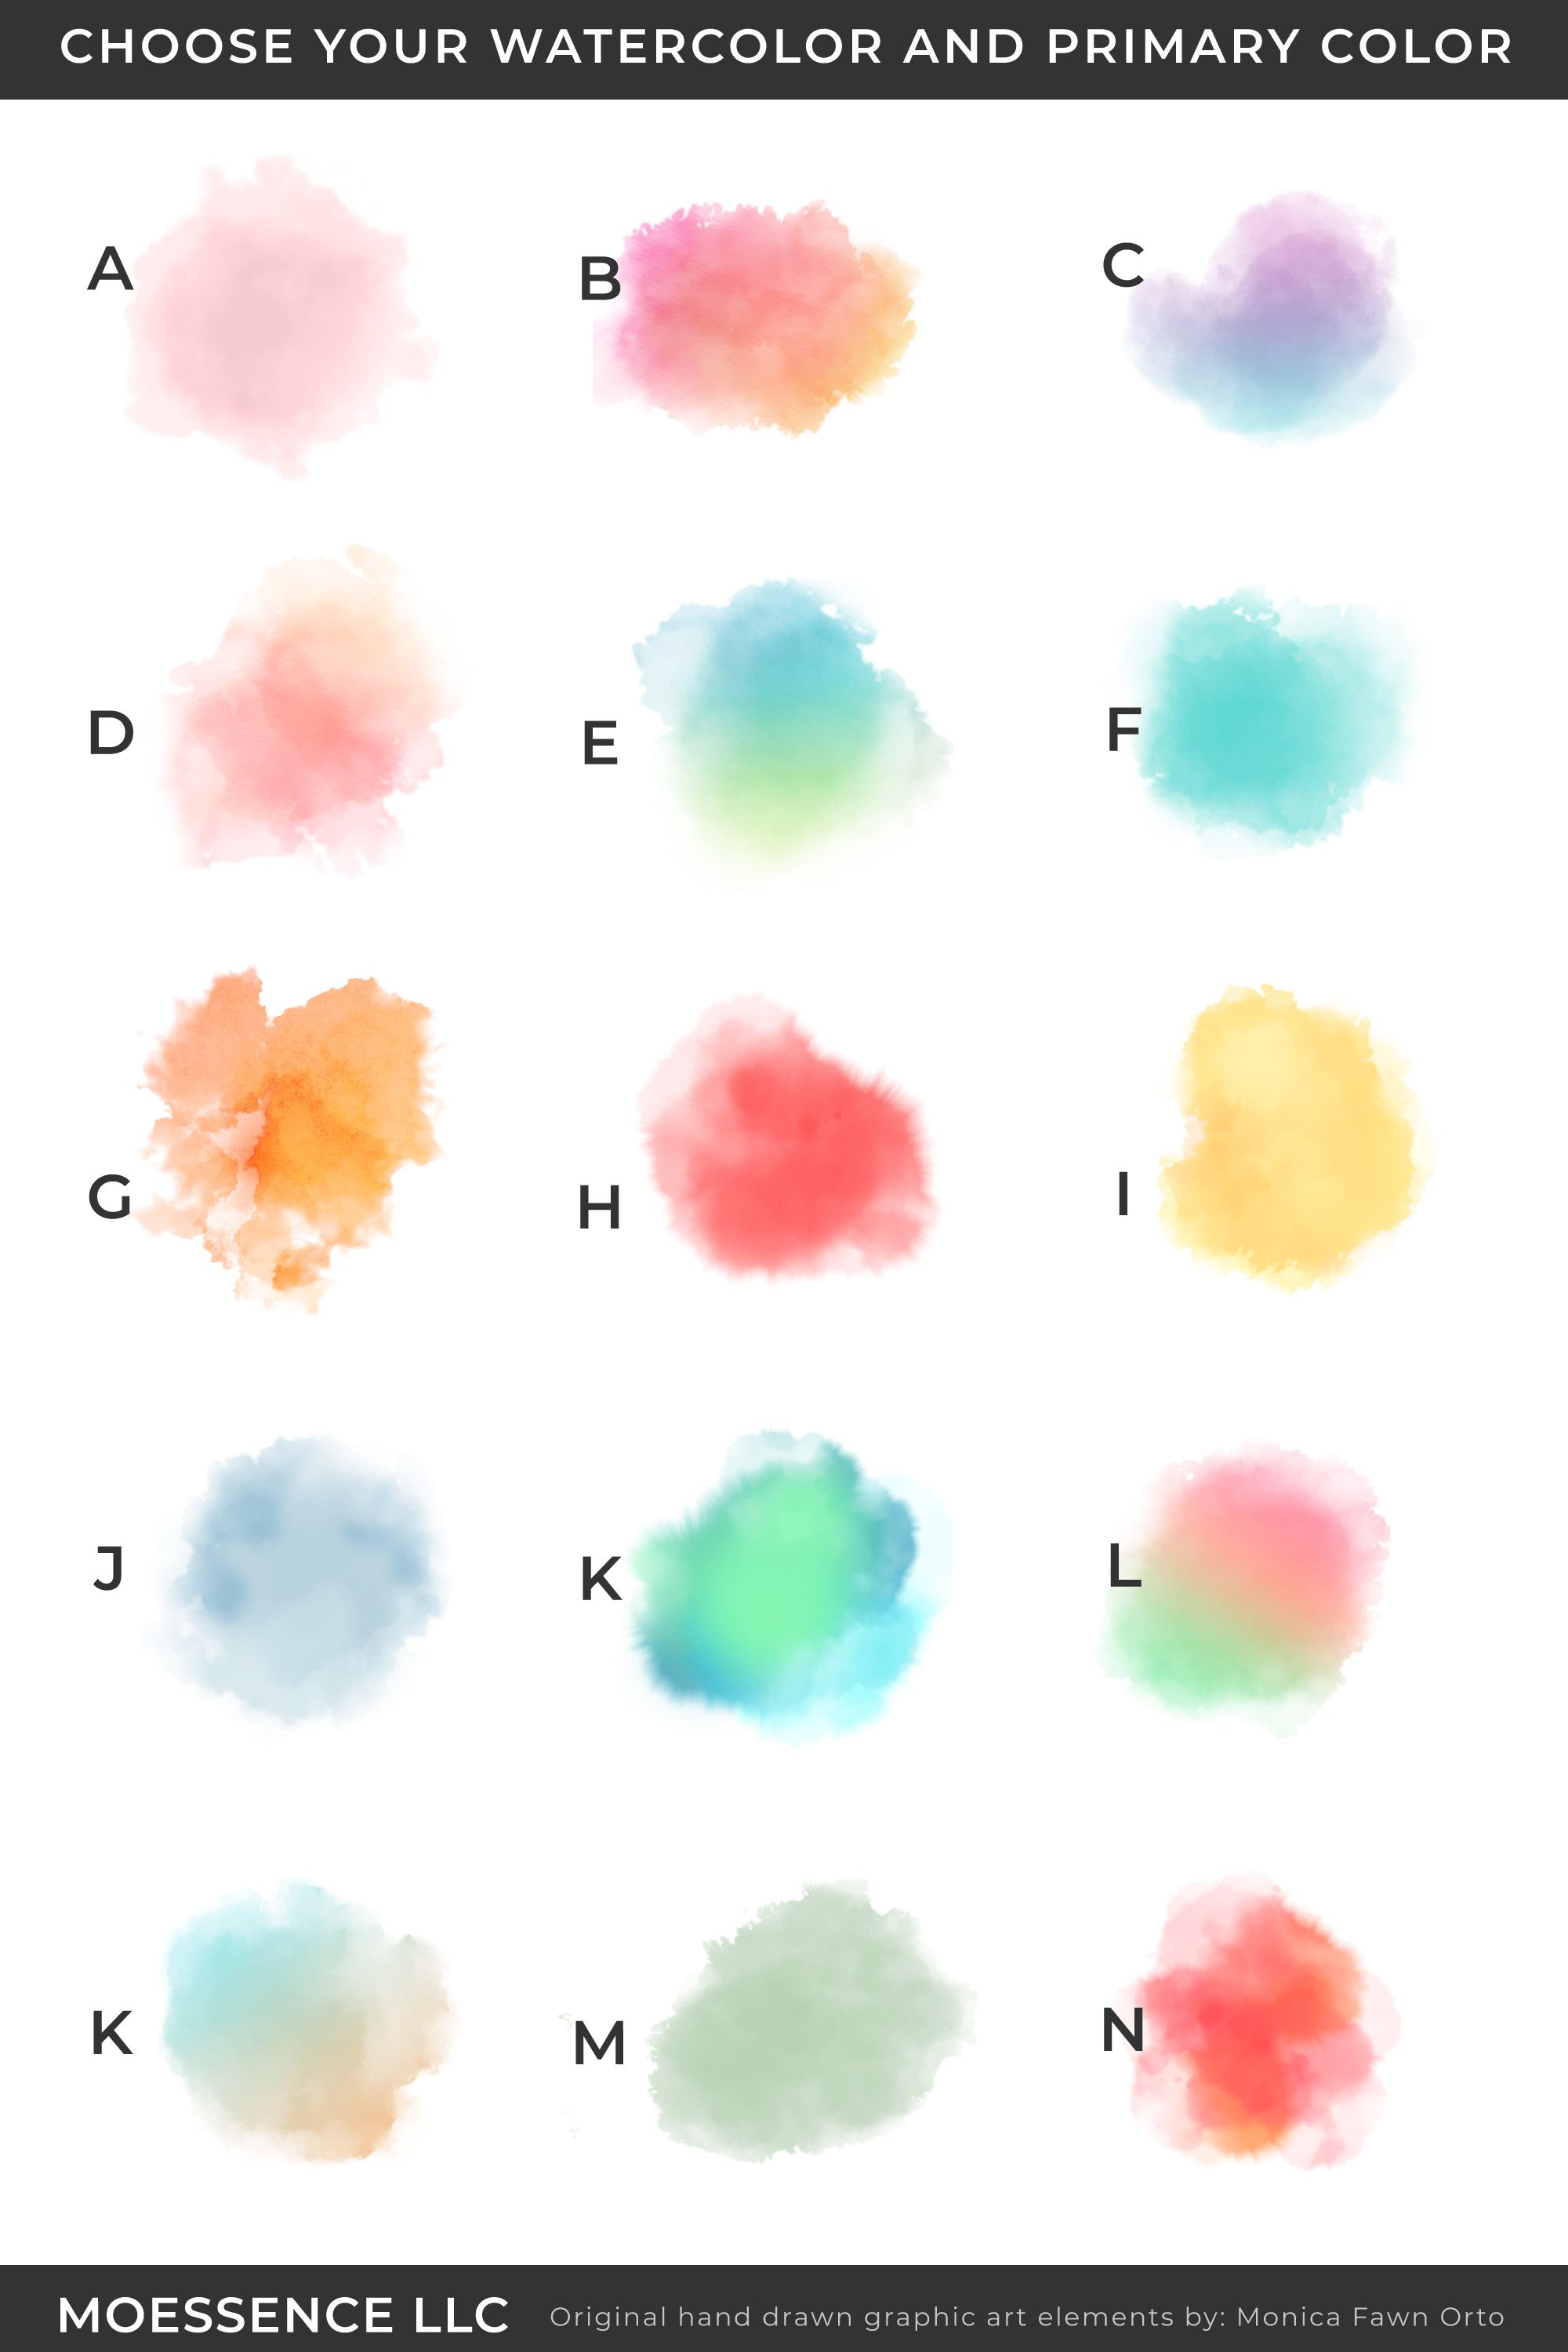 Shades Of Pink Watercolor Brush Strokes Vector Free Image By